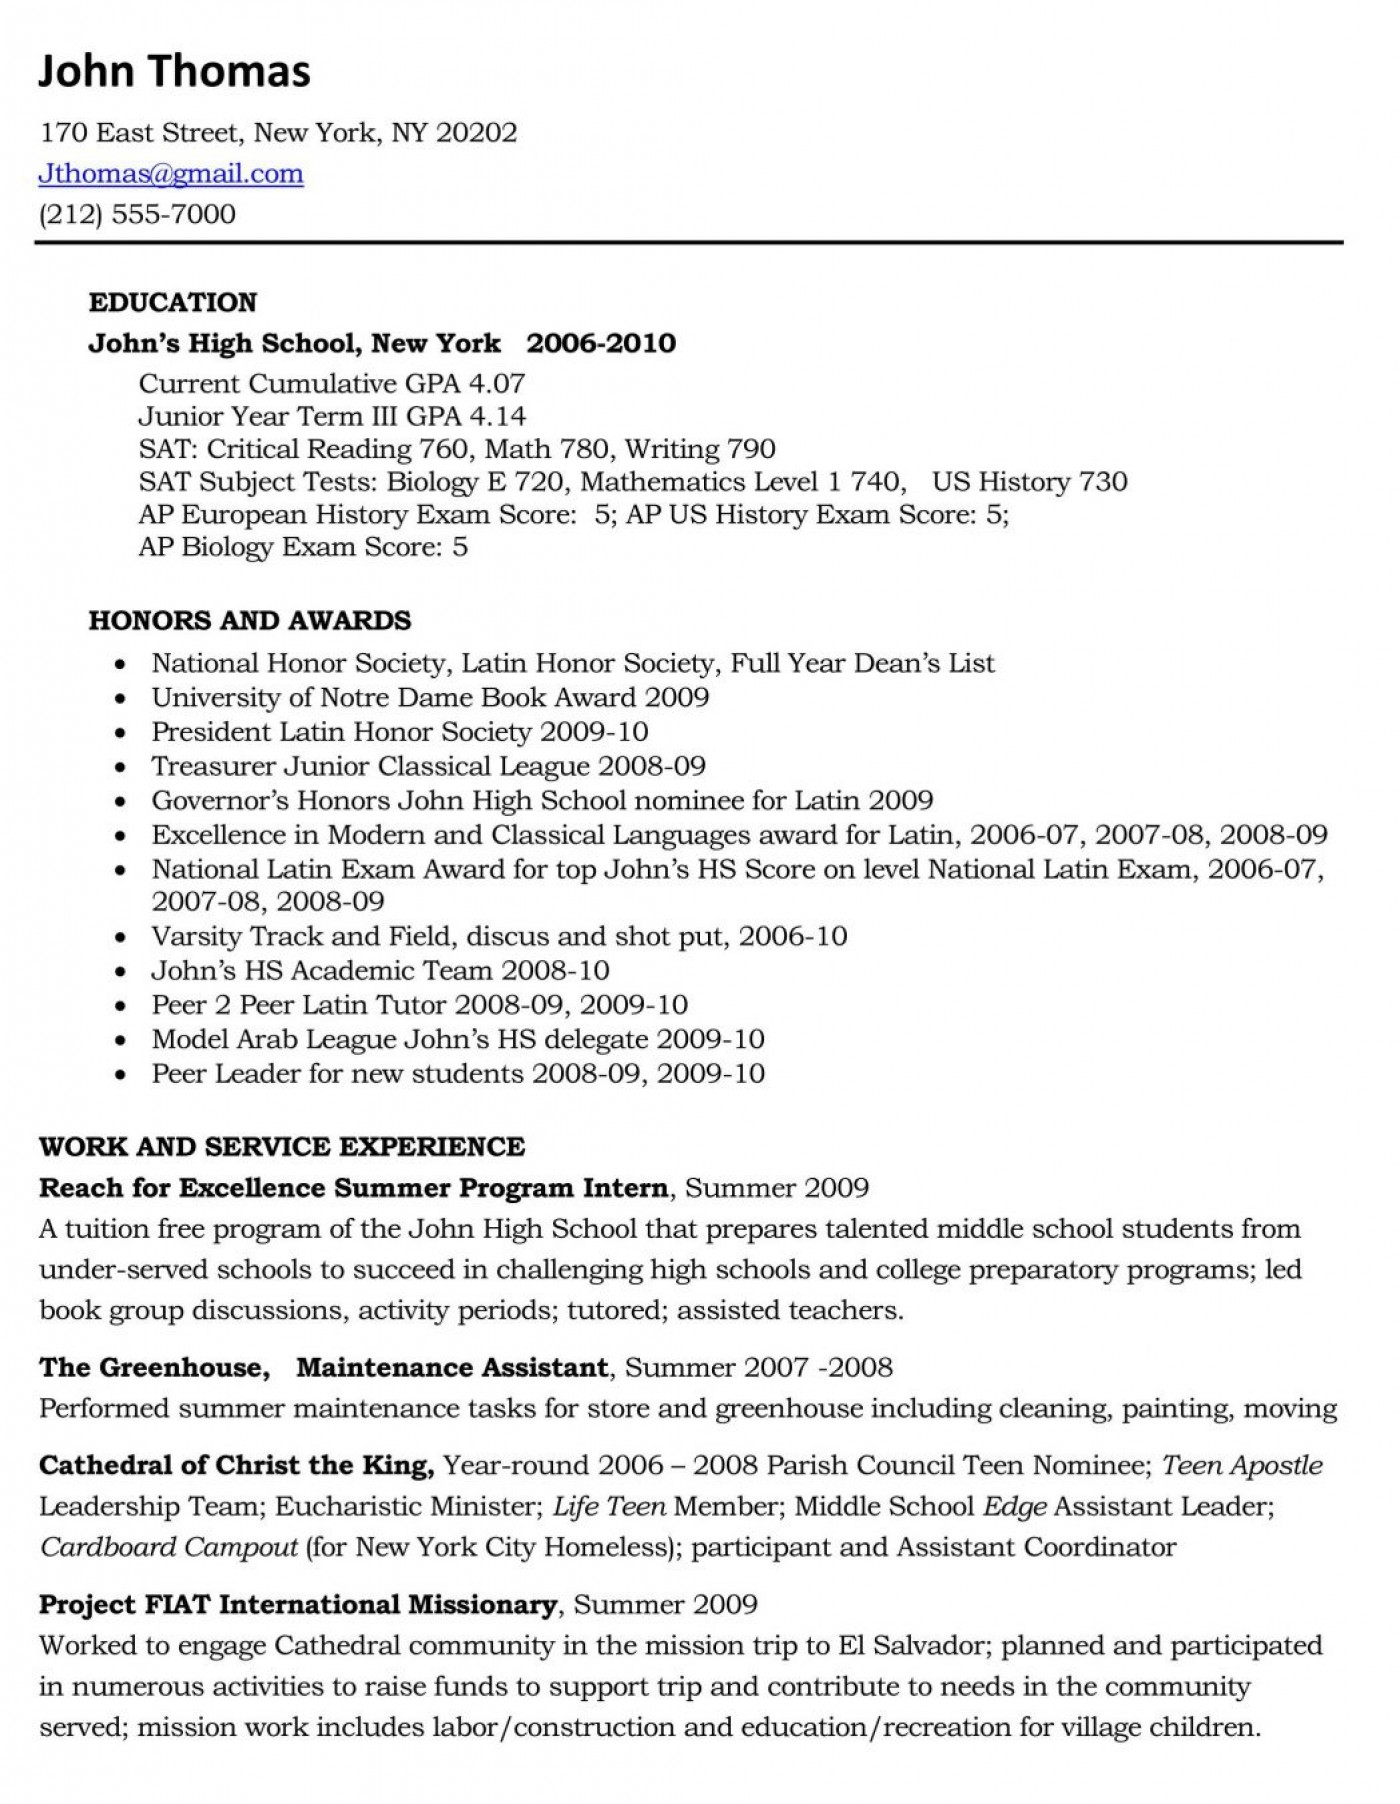 008 Essay On Texting Resume Jpg Persuasive Should Cellphones Allowed In S Cell Phones Not School Reasons Why Argumentative Banned Mobile 1048x1351 Fantastic Be Schools Pdf 1400